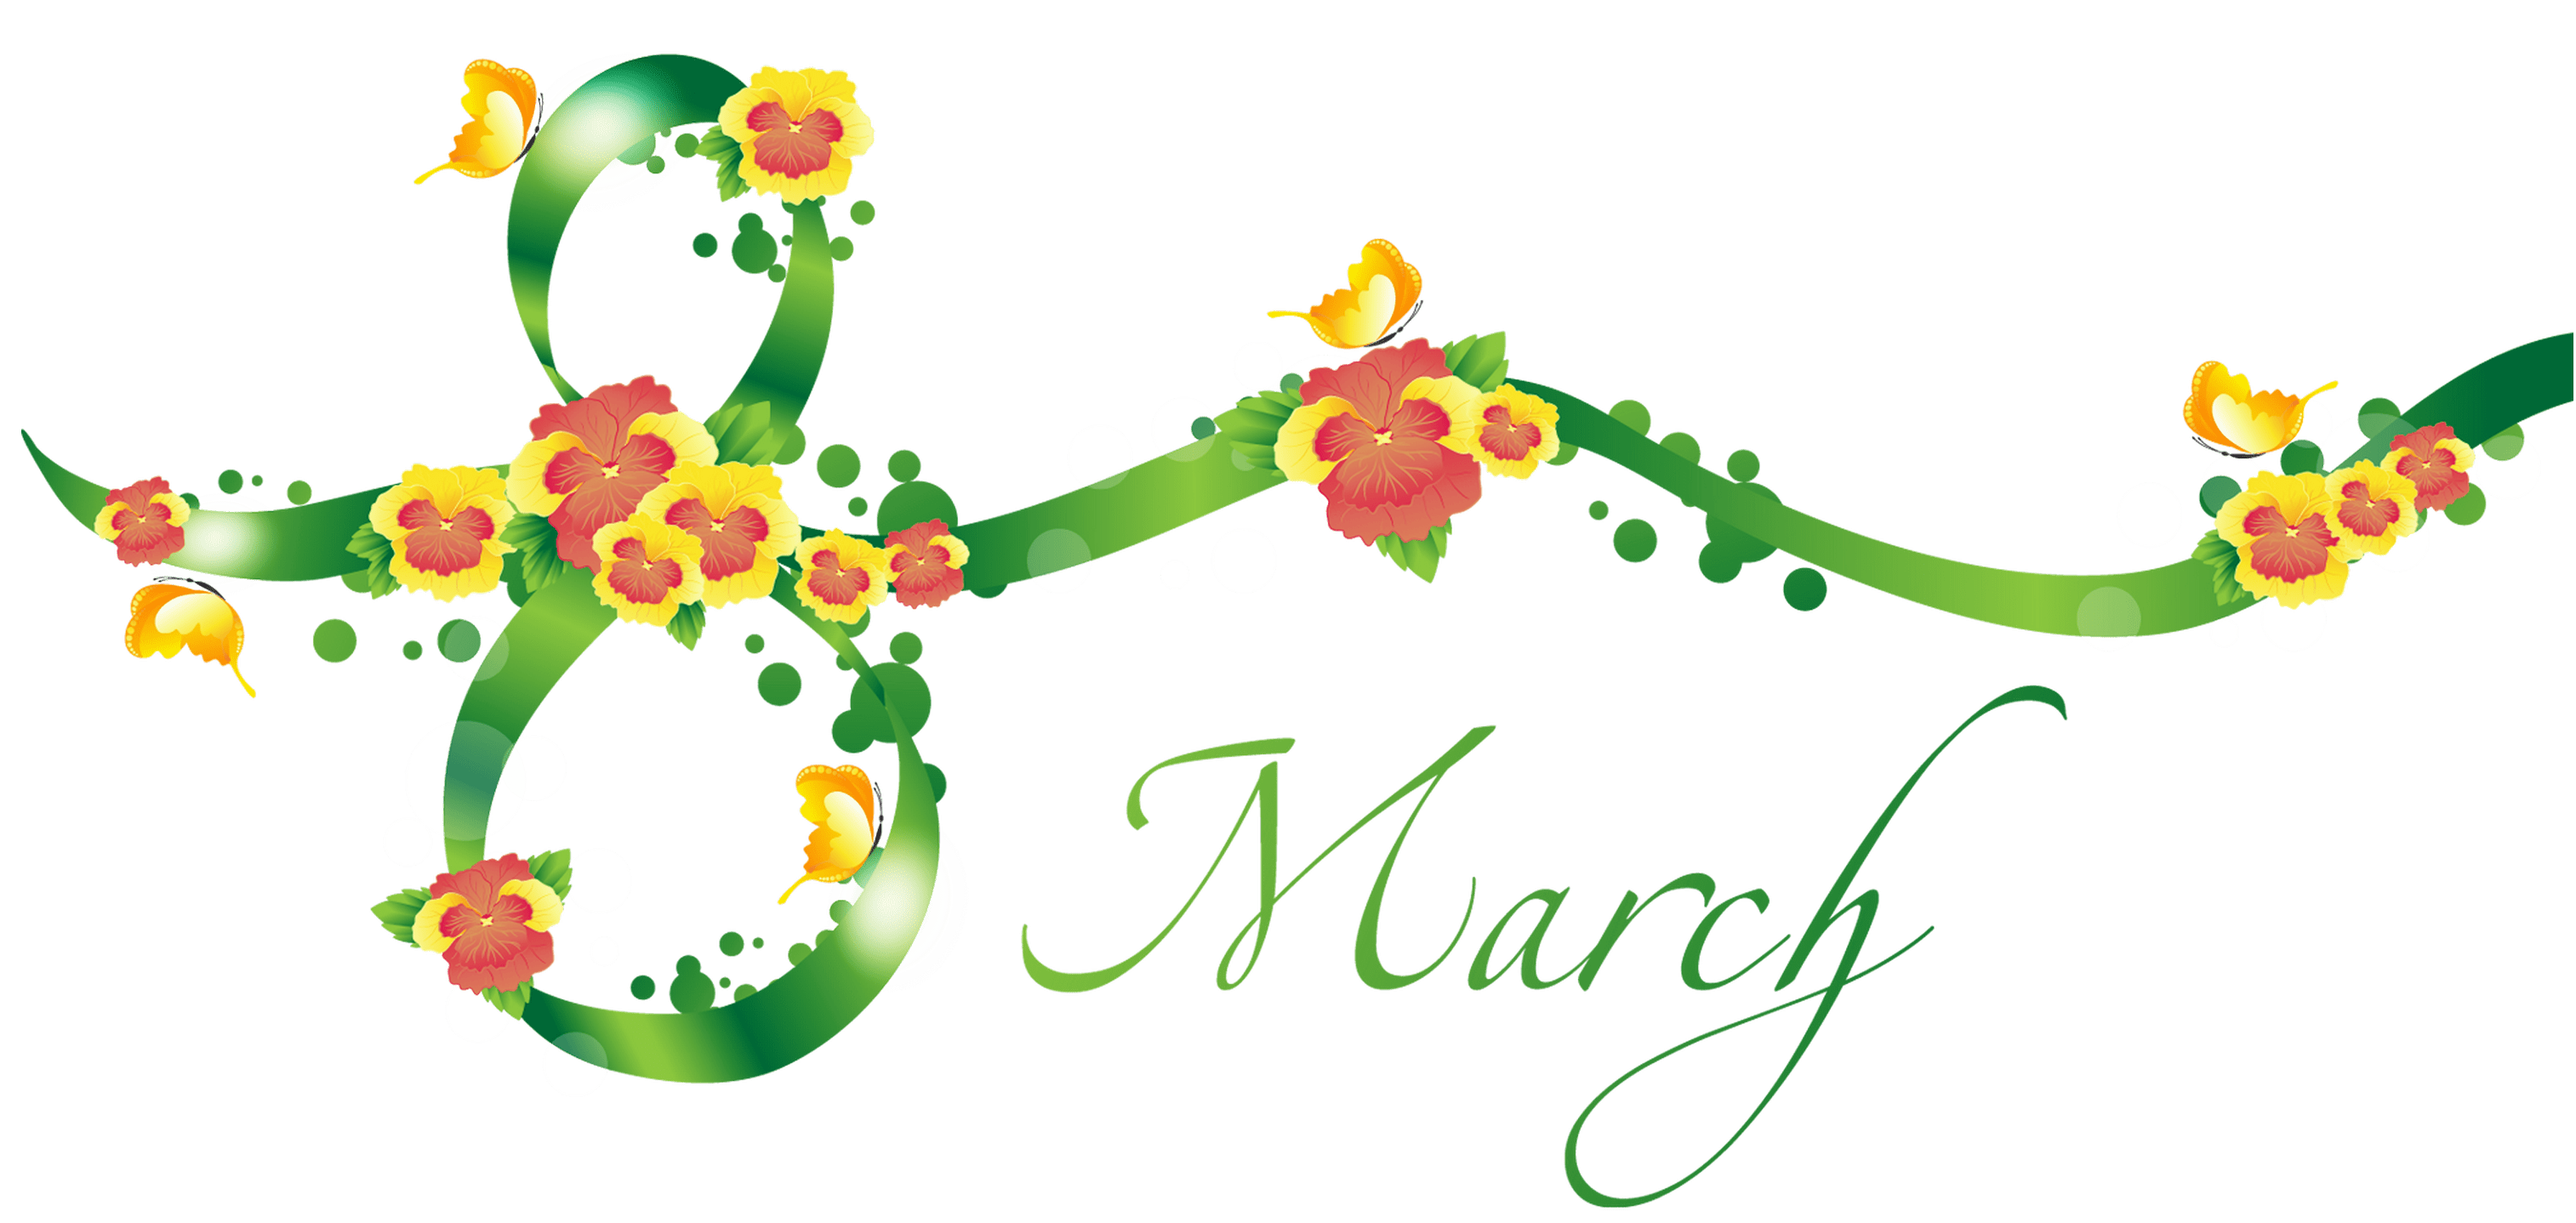 March Clipart for Facebook